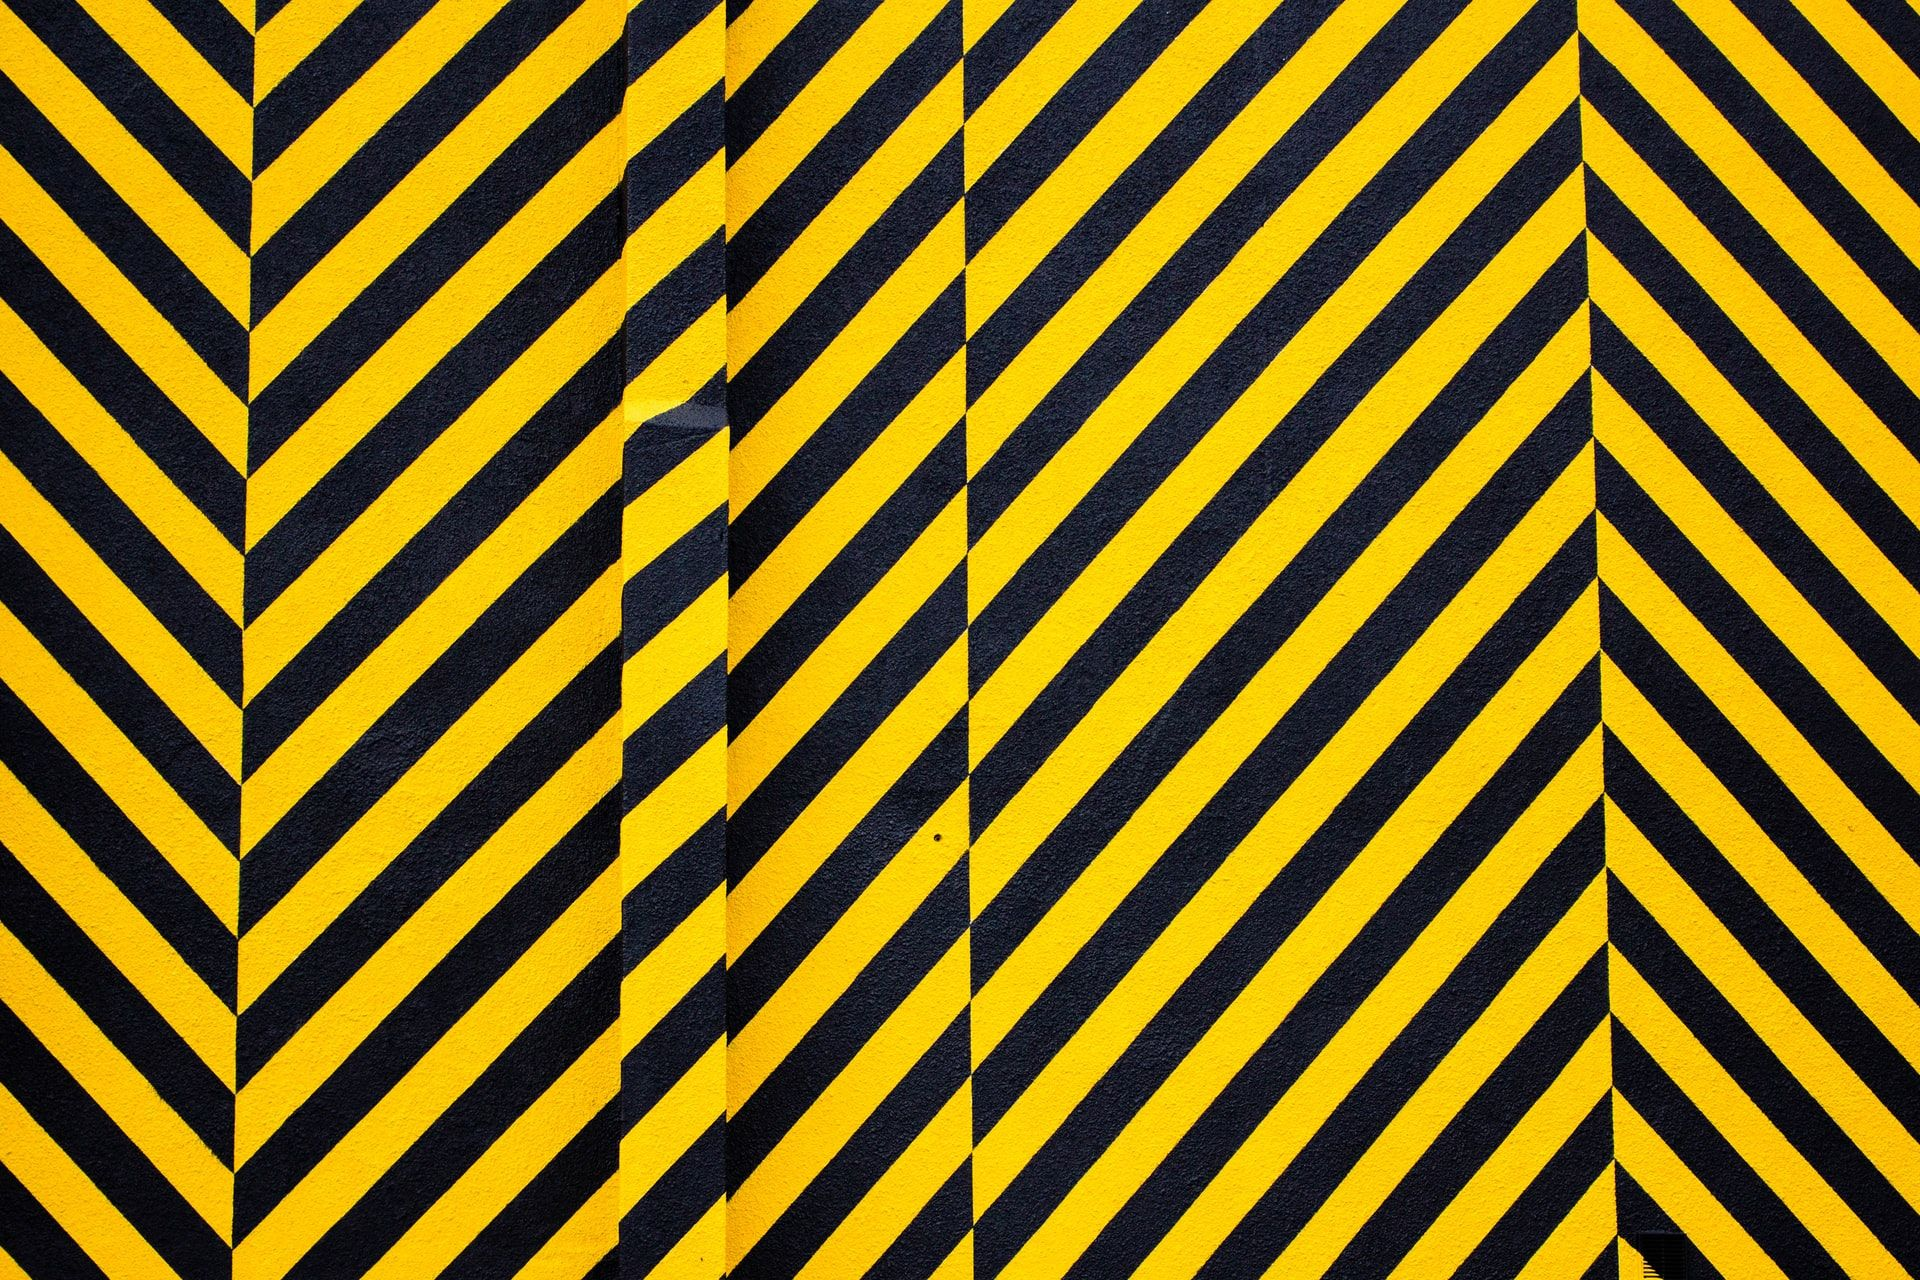 A wall panted with diagonal black and yellow stripes